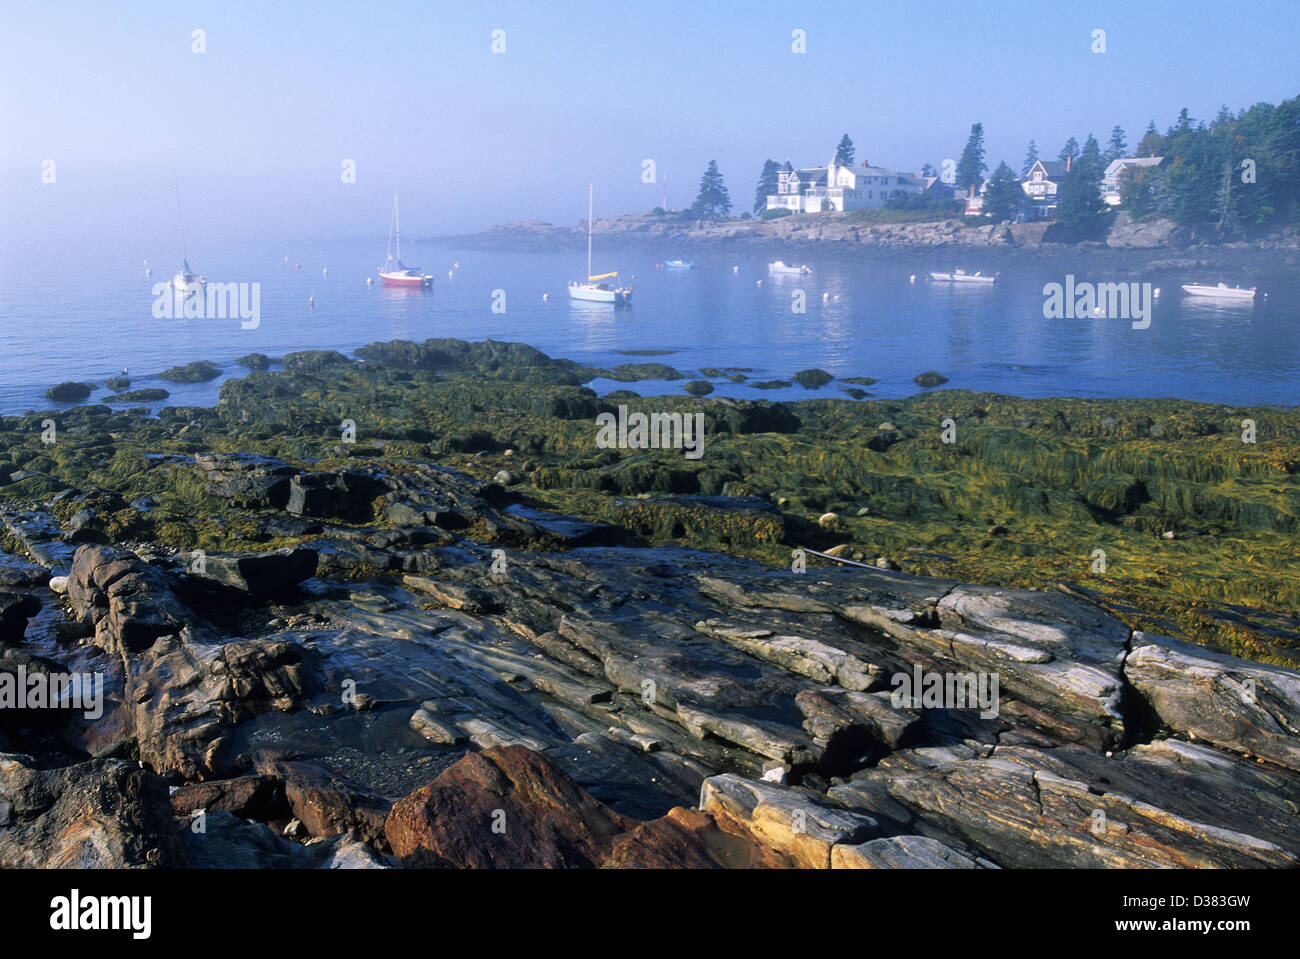 Elk282-1427, Maine Ocean Point, l'aménagement du littoral dans le brouillard Photo Stock